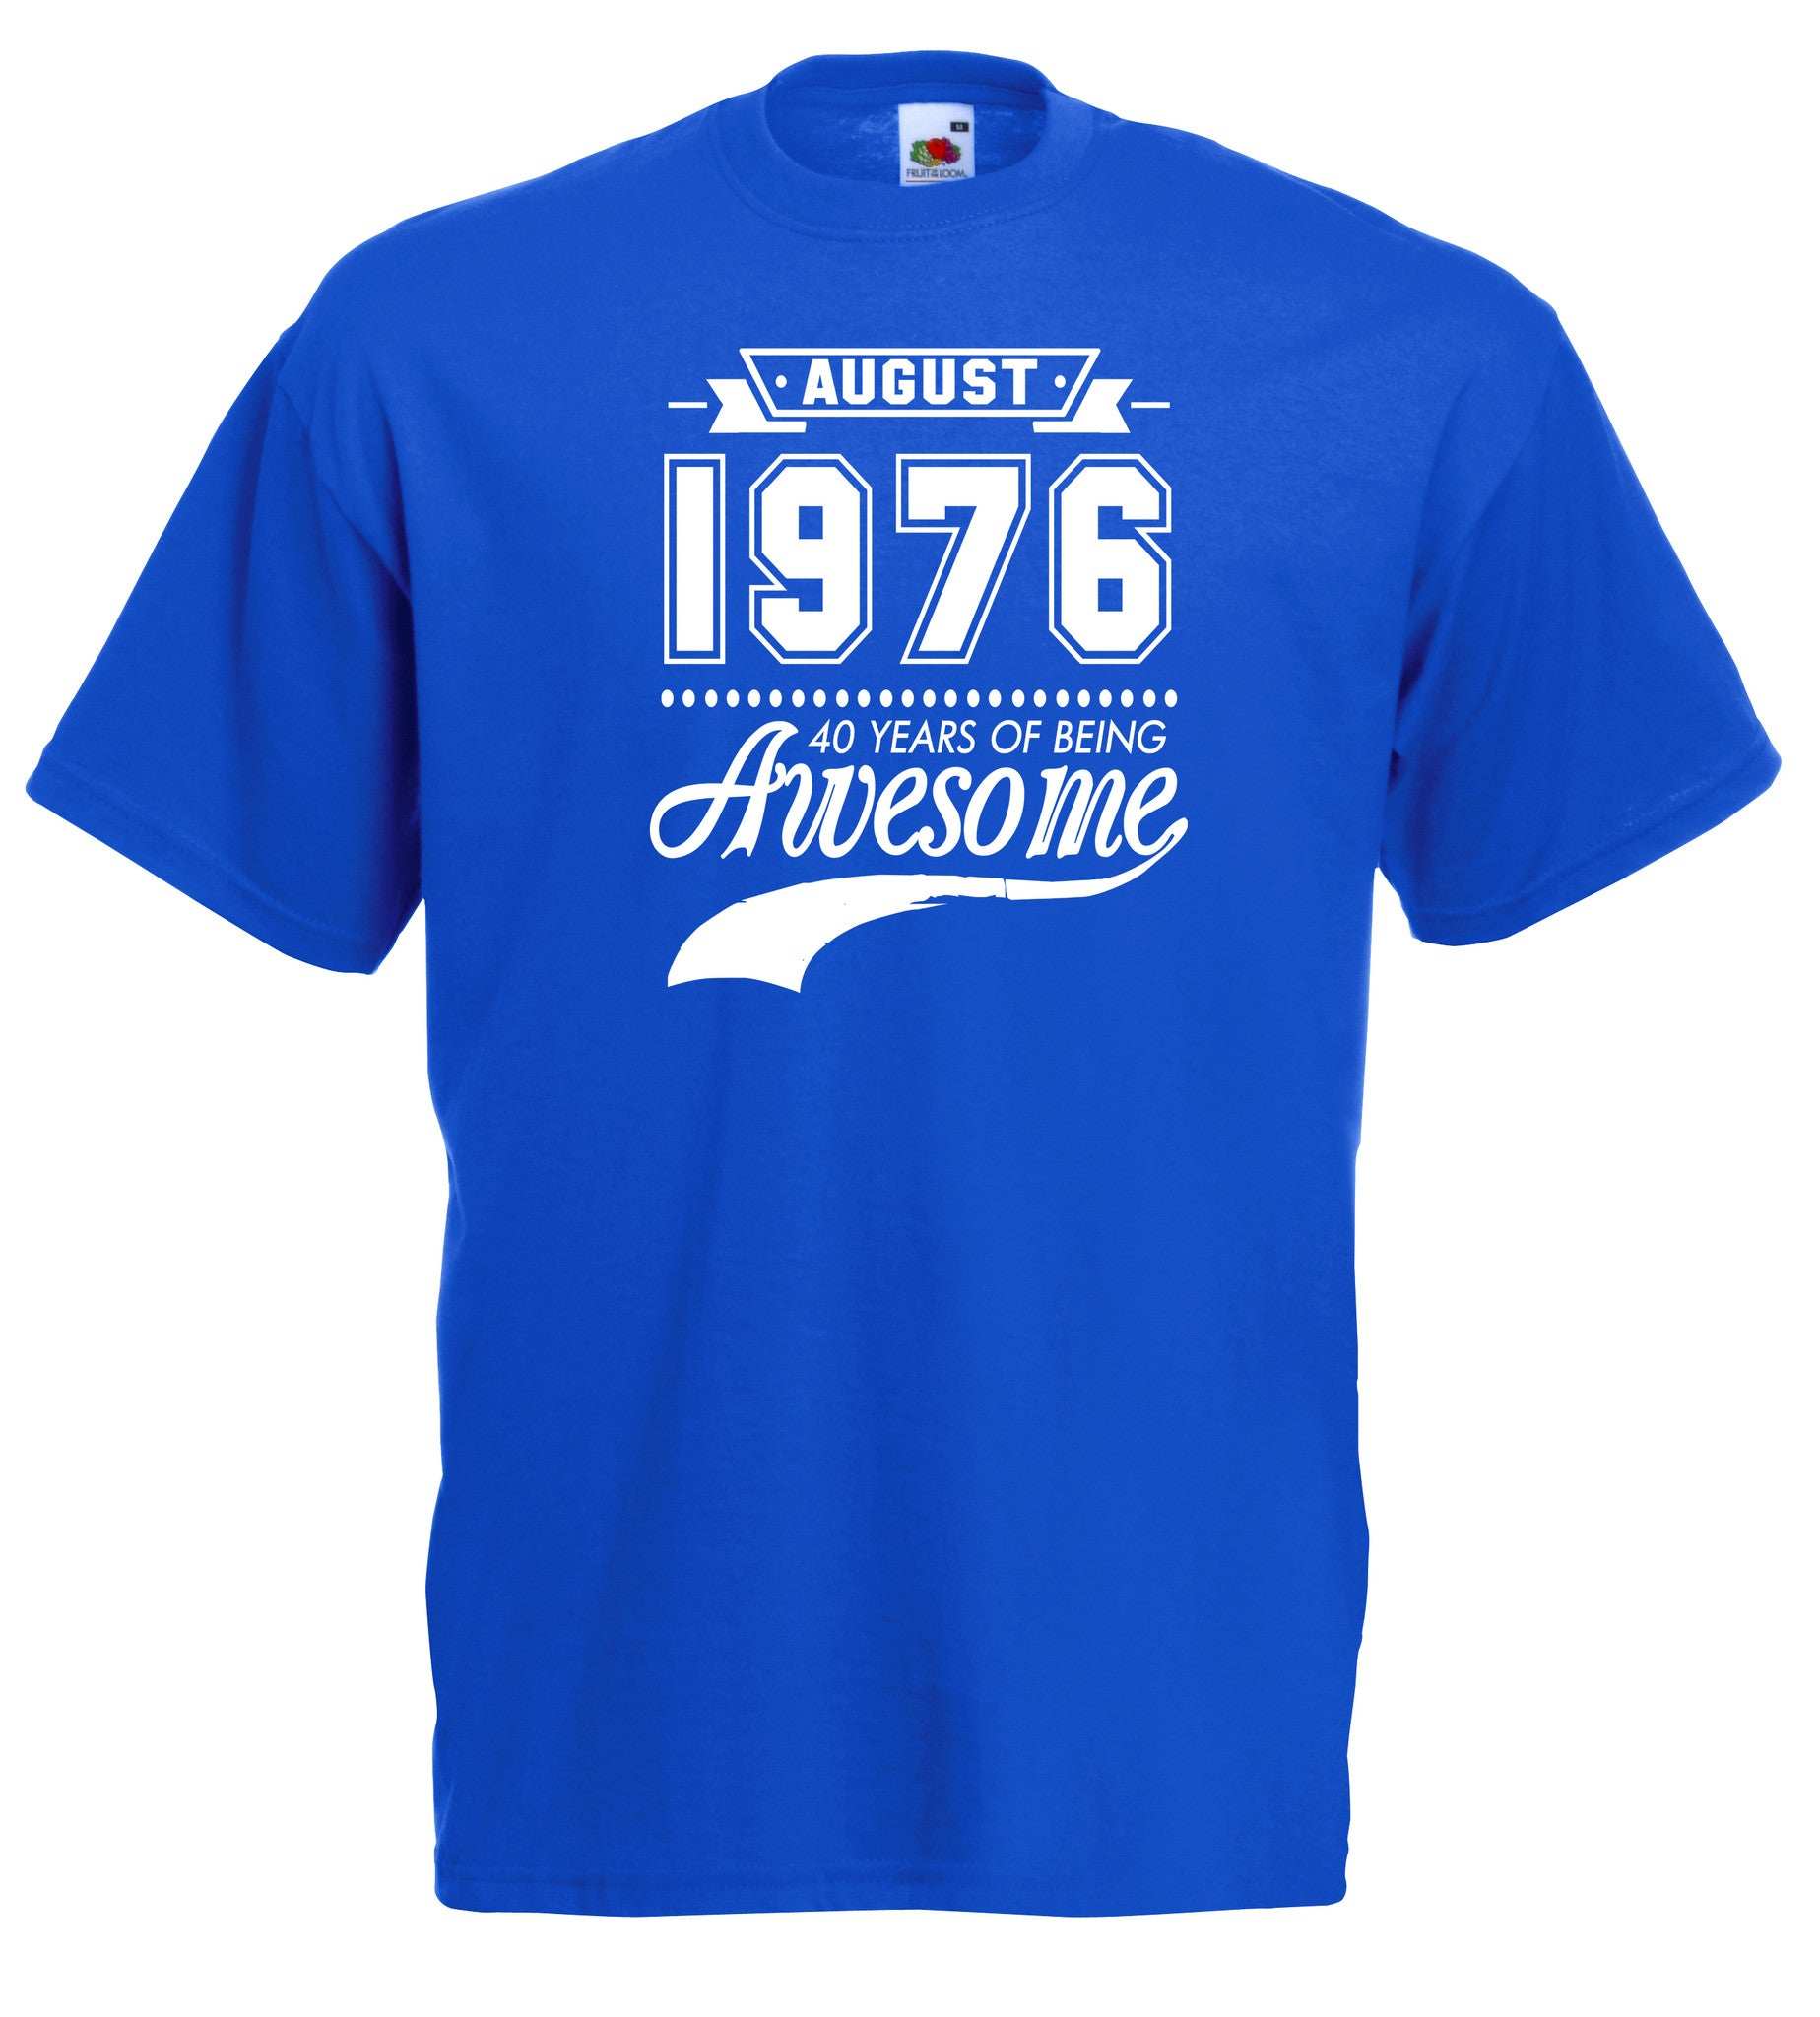 Years of Being Awesome Birthday T-shirt